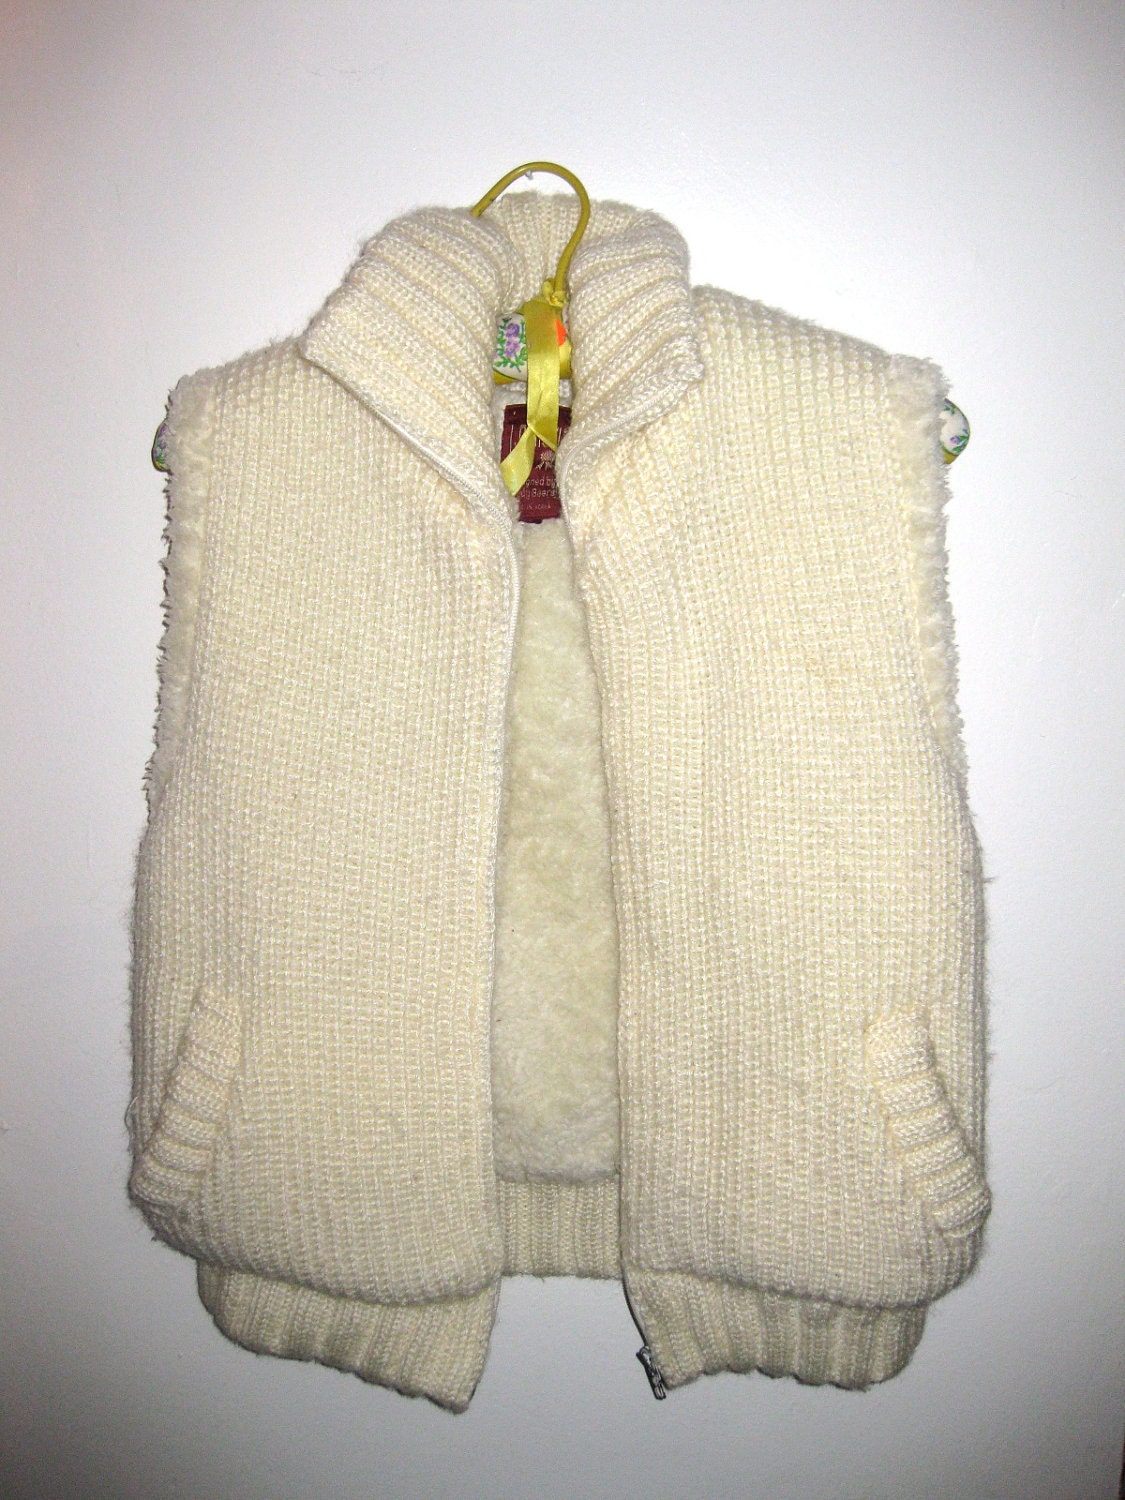 J. Gallery Cream Sleeveless Sweater vest Designed by Trudy Beers